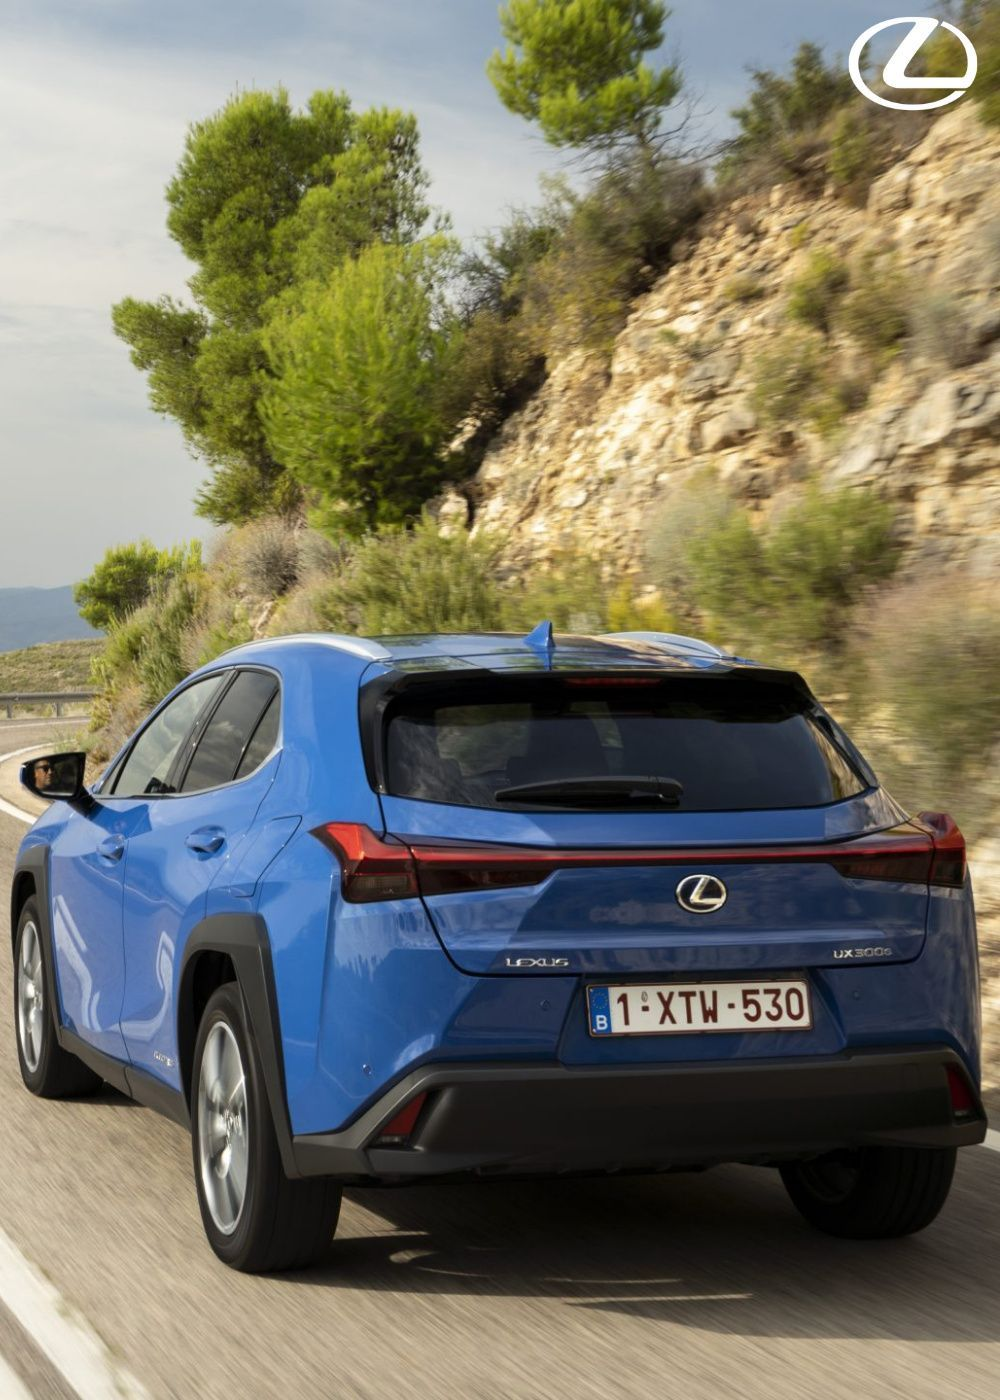 A compact new transaxle with gear tooth surface polishing and an optimised lubrication system contributes to the super-smooth running of the Lexus UX 300e. Click to find out more. #Lexus #LexusUX #UX300e #ElectricCars #NewCars #Electric #LuxuryCars #SUV #LuxurySUV #FamilySUV #Design #CarDesign #Automotive #Luxury